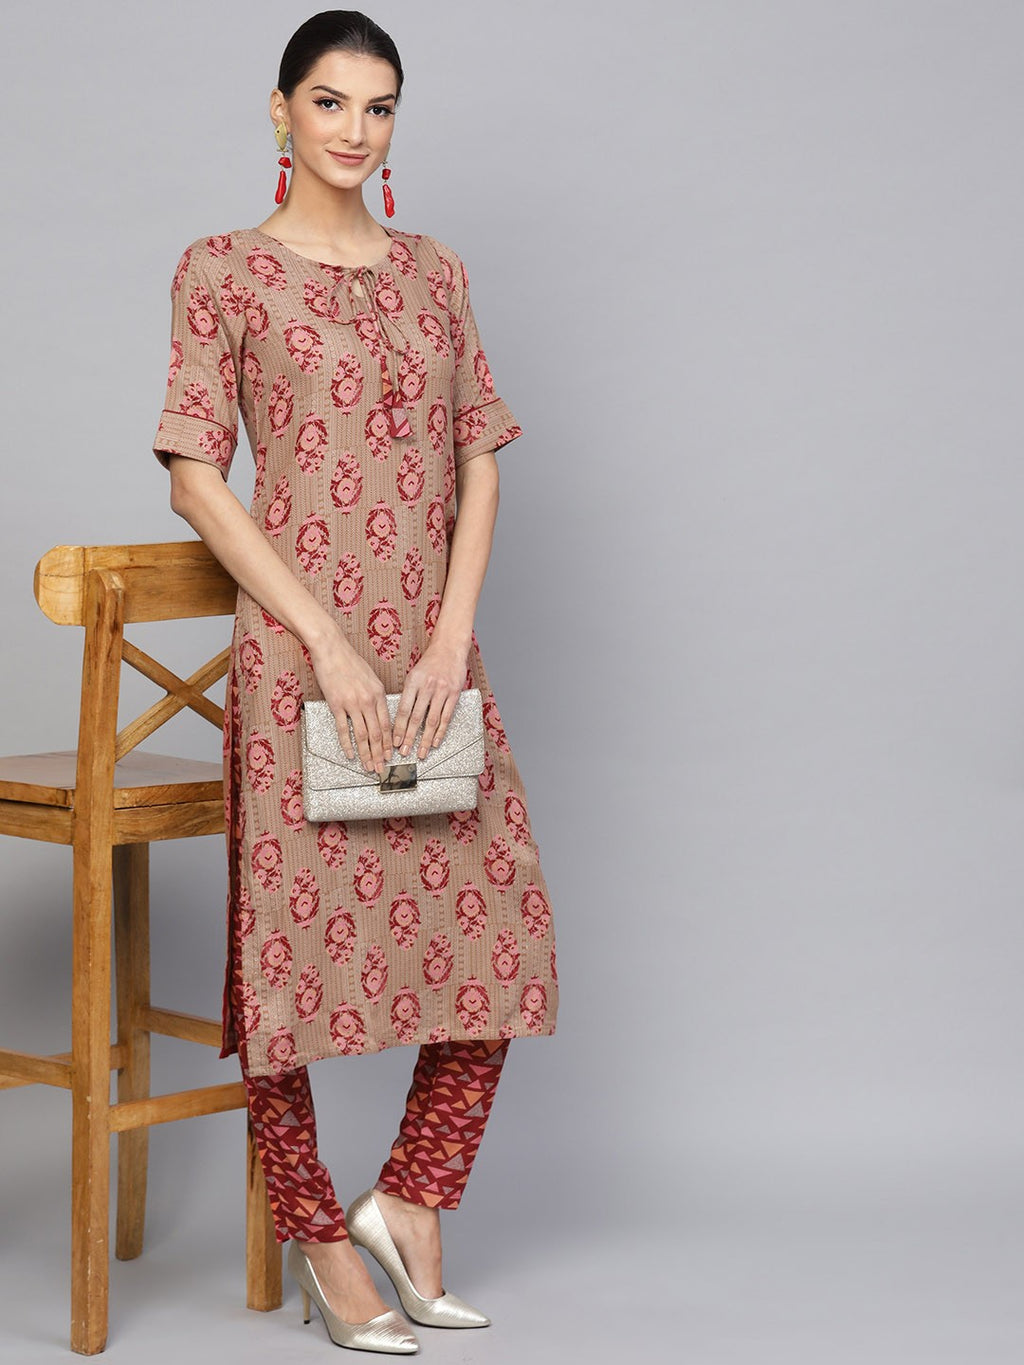 Beige & Maroon Printed Straight Kurta With Pant Set (Fully Stitched) | Znx4ever.com